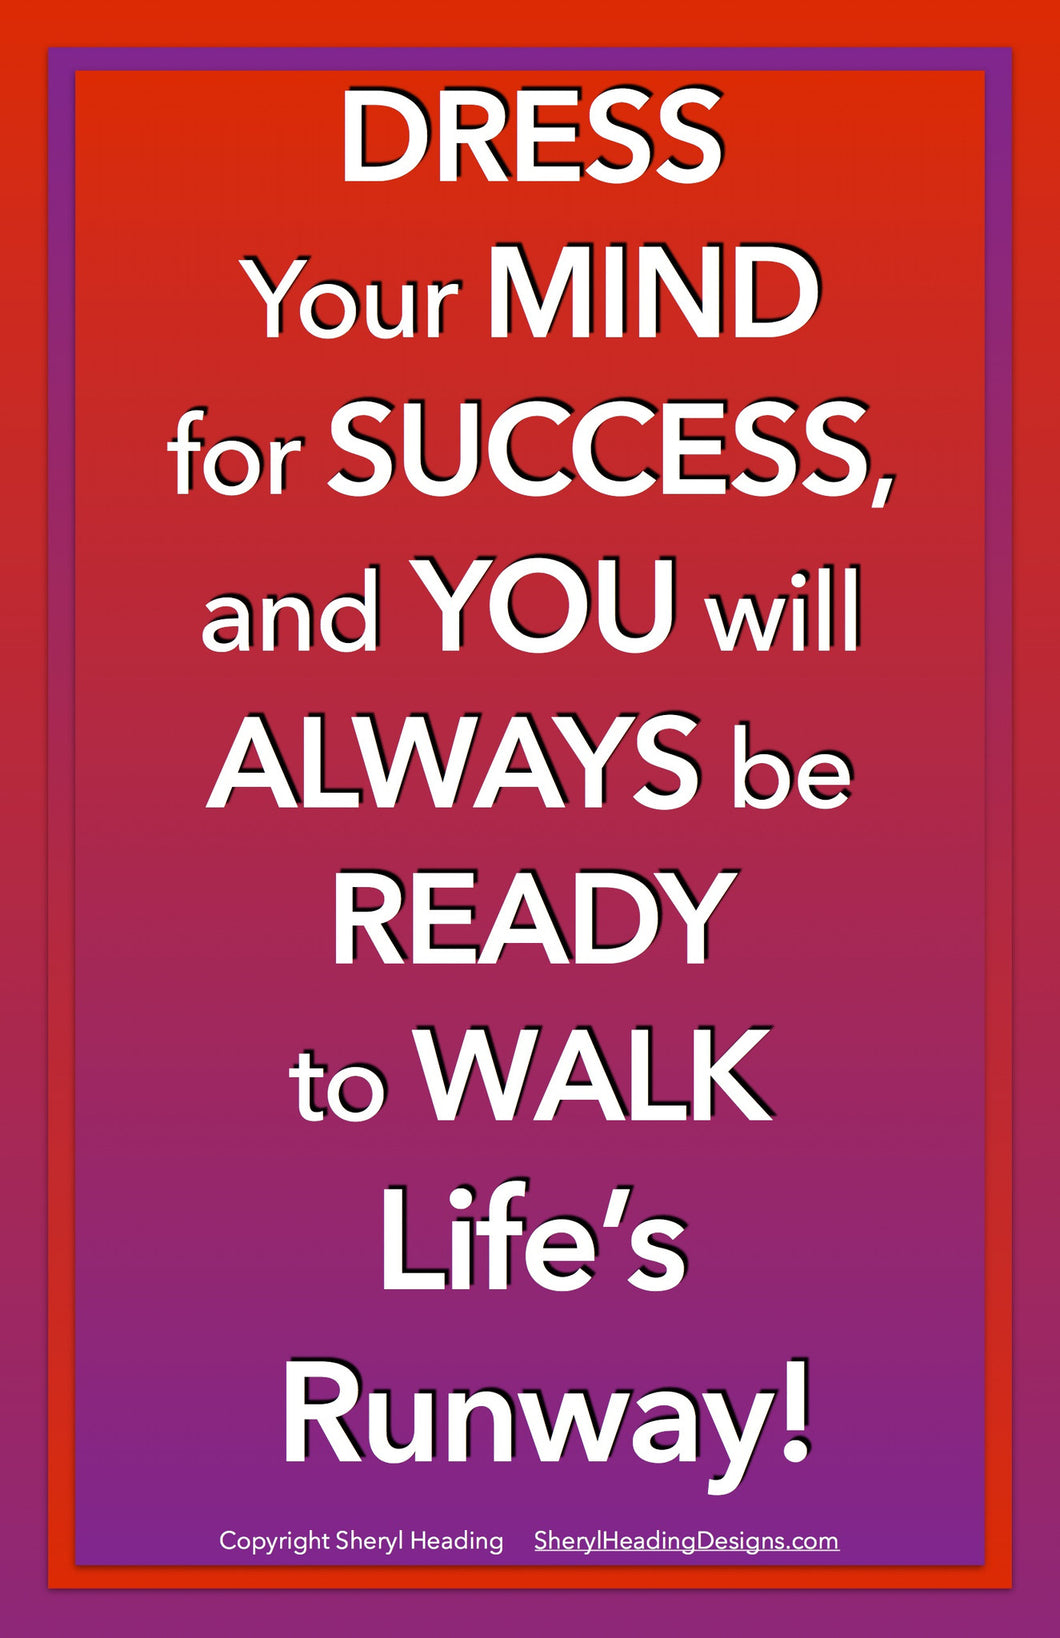 Dress Your Mind For Success Poster - Sheryl Heading Designs